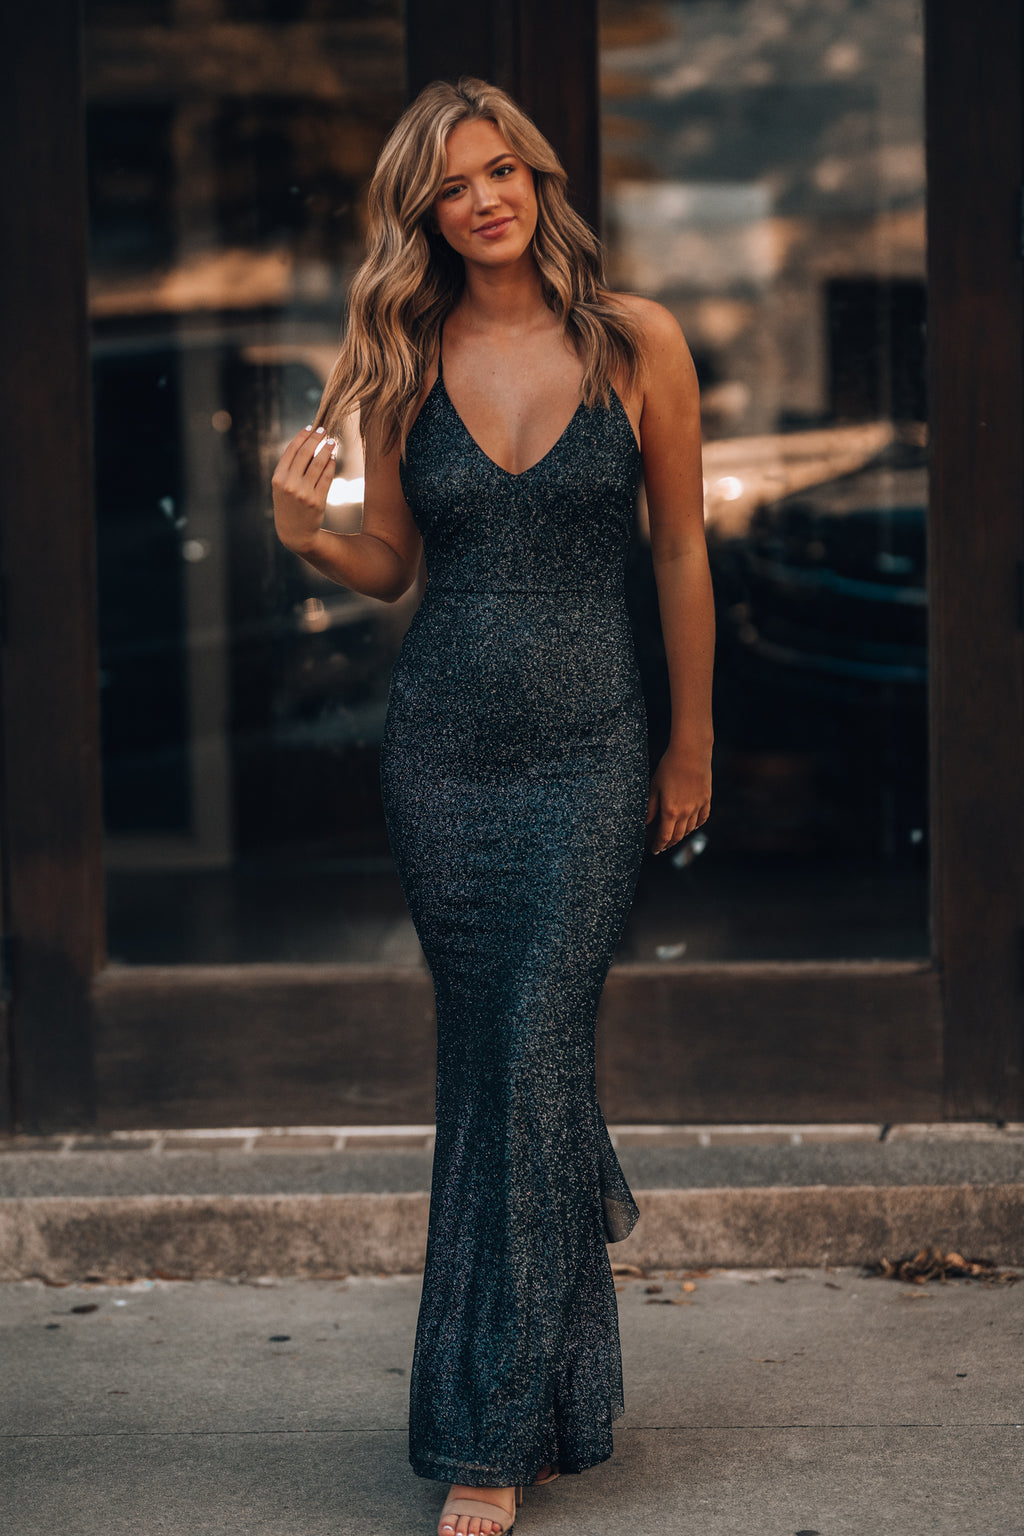 This Is Love Glitter Gown (Black) PRE-ORDER Ships Late October